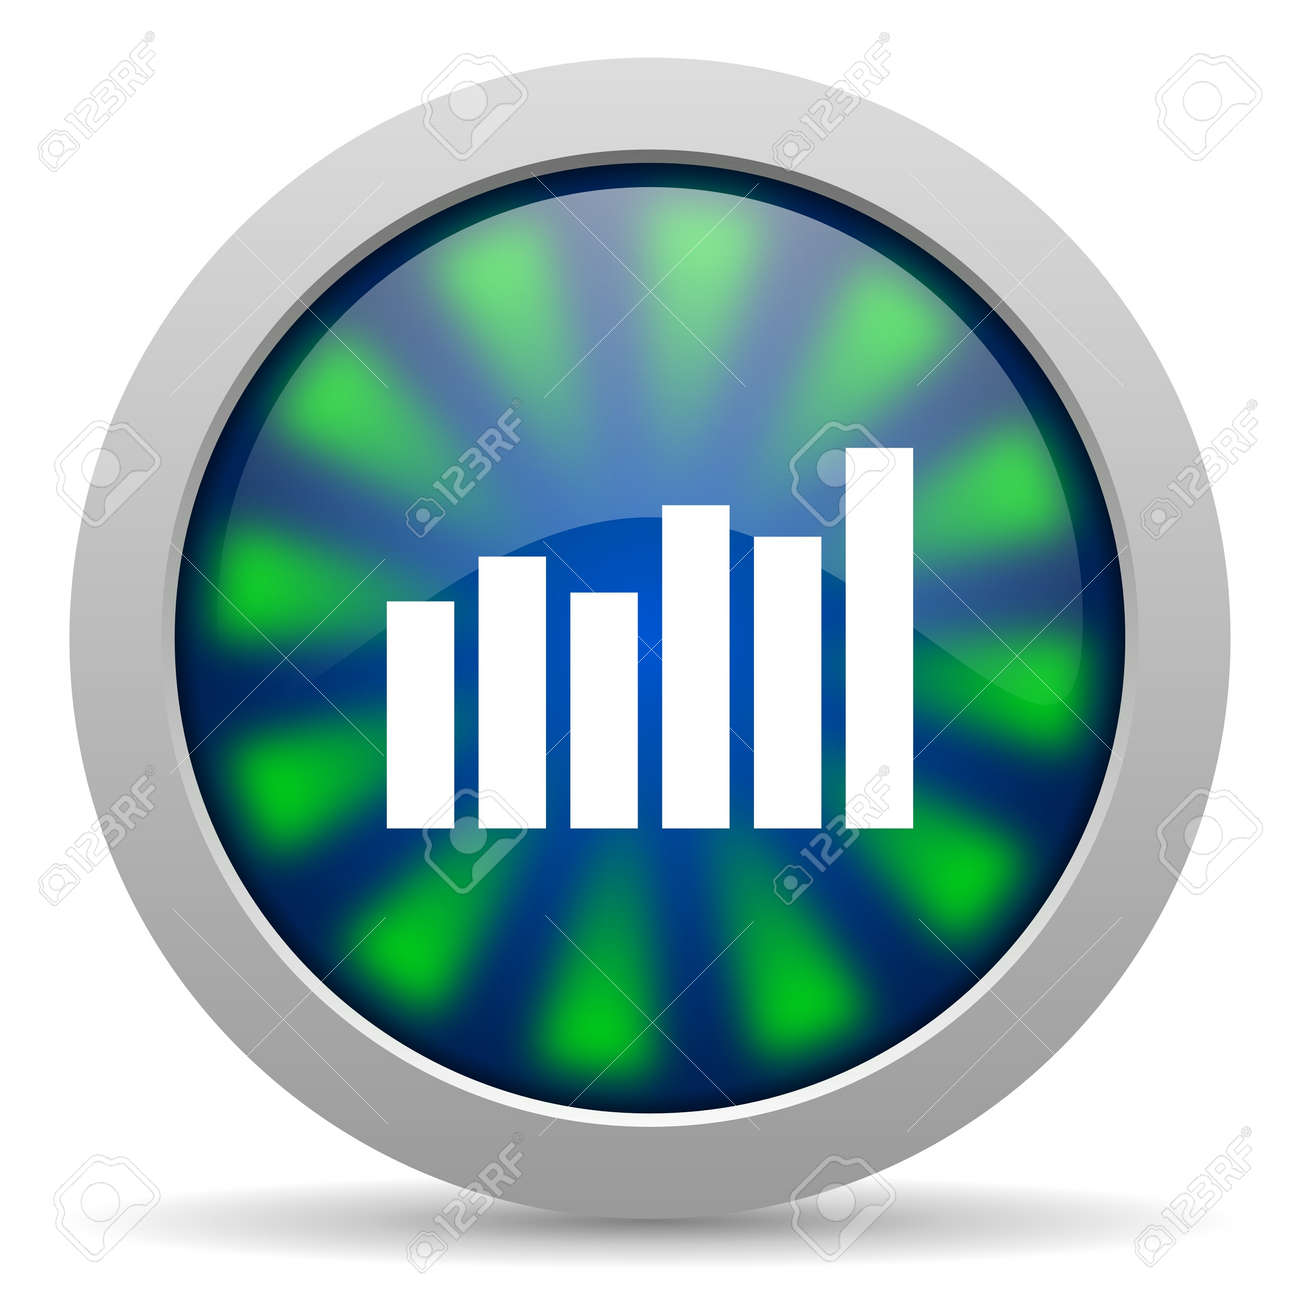 bar graph icon Stock Photo - 15415983